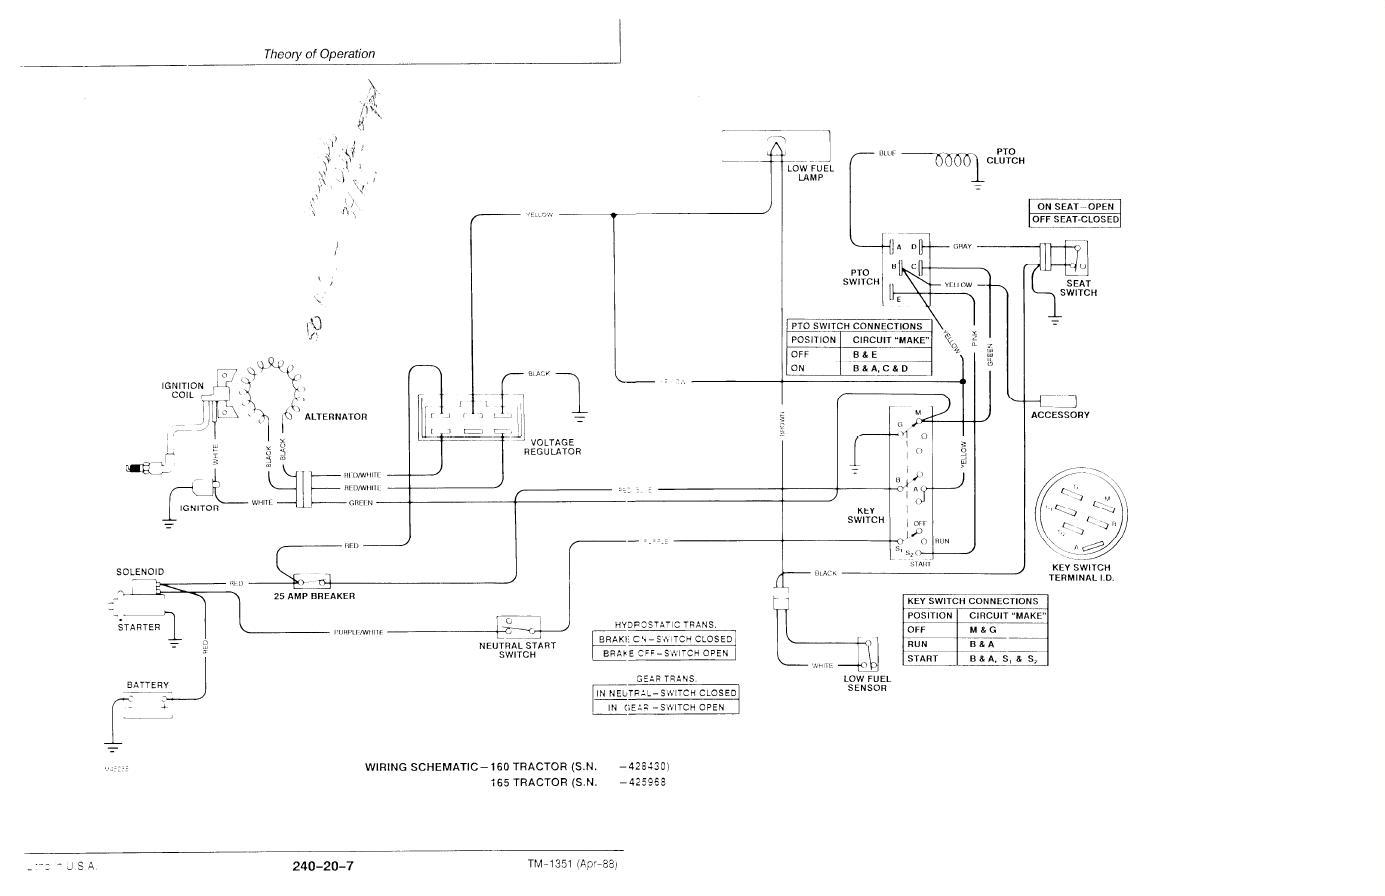 John Deere L110 Wiring Schematic | Free Wiring Diagram on john deere lx255 wiring-diagram, john deere 425 wiring-diagram, john deere la105 wiring-diagram, john deere hpx wiring-diagram, john deere gator electrical problems, john deere lx277 wiring-diagram, john deere 111h wiring-diagram, john deere l125 wiring-diagram, john deere lx173 wiring-diagram, john deere 345 wiring-diagram, john deere 455 wiring-diagram, john deere stx38 wiring-diagram, john deere m wiring-diagram, john deere gt262 wiring-diagram, john deere 155c wiring-diagram, gator tx wiring-diagram, john deere gator horns, john deere m665 wiring-diagram, john deere z225 wiring-diagram, john deere 235 wiring-diagram,